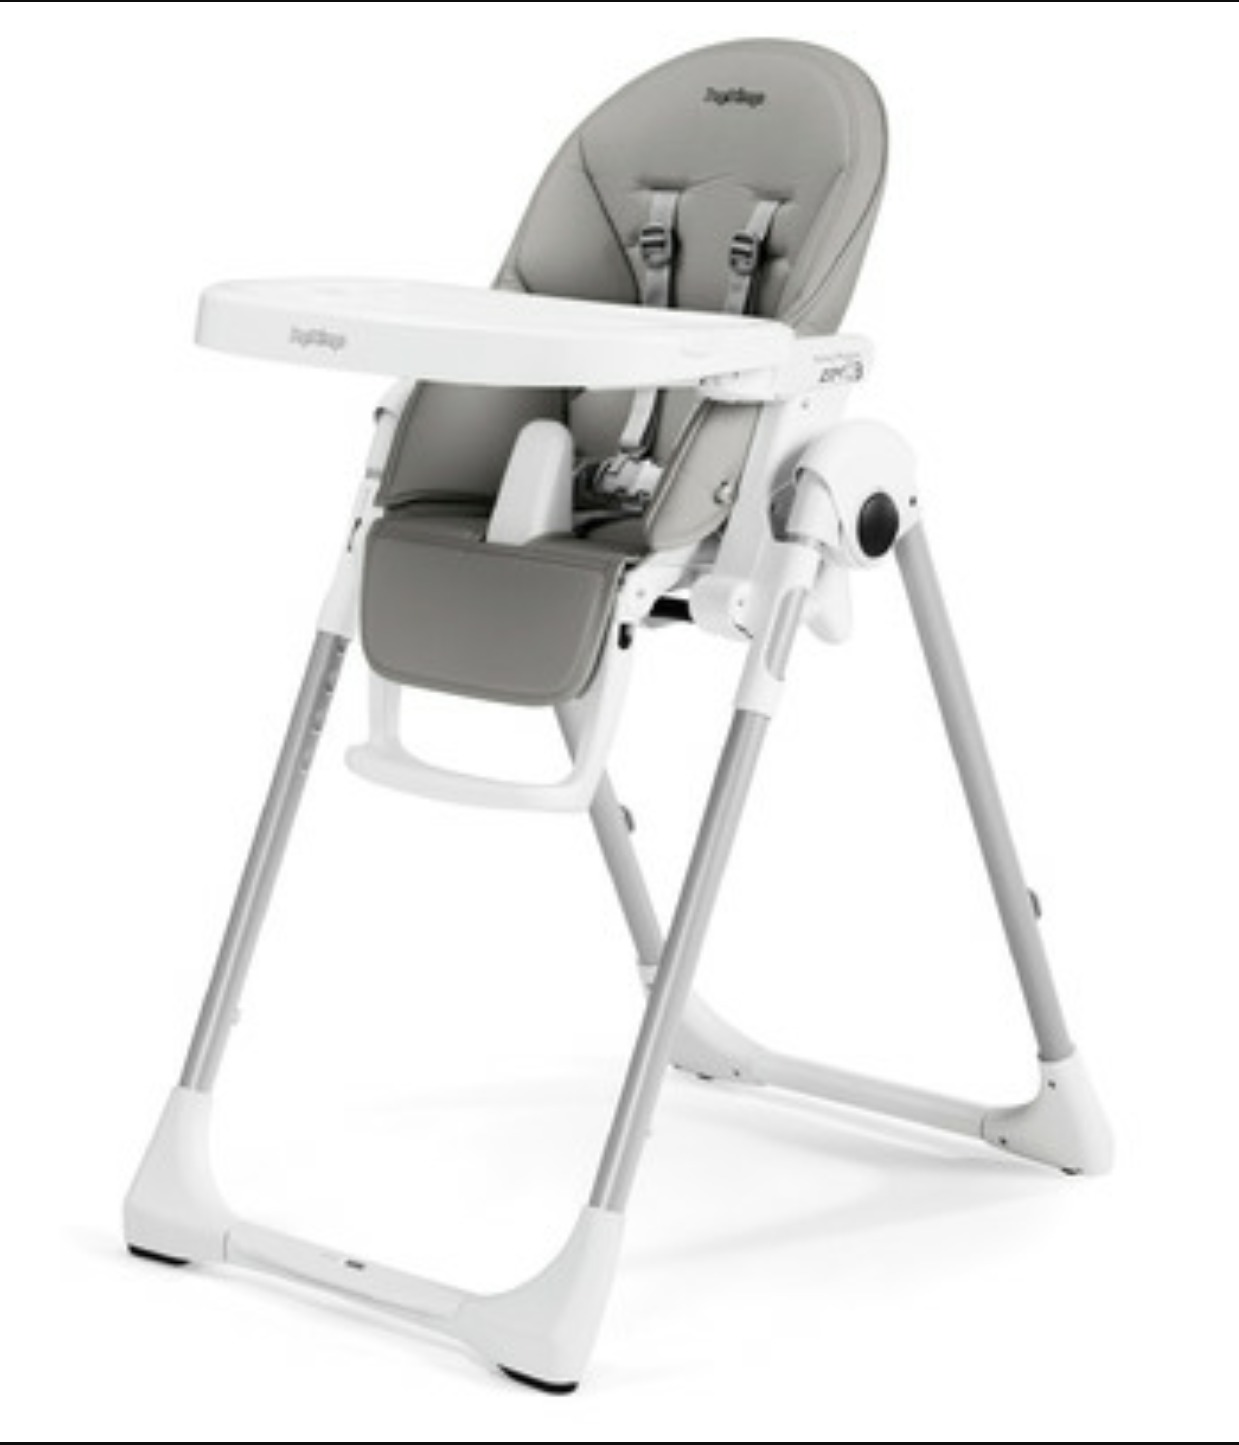 Peg Perego Prima Pappa Zero 3 High Chair Reviews In